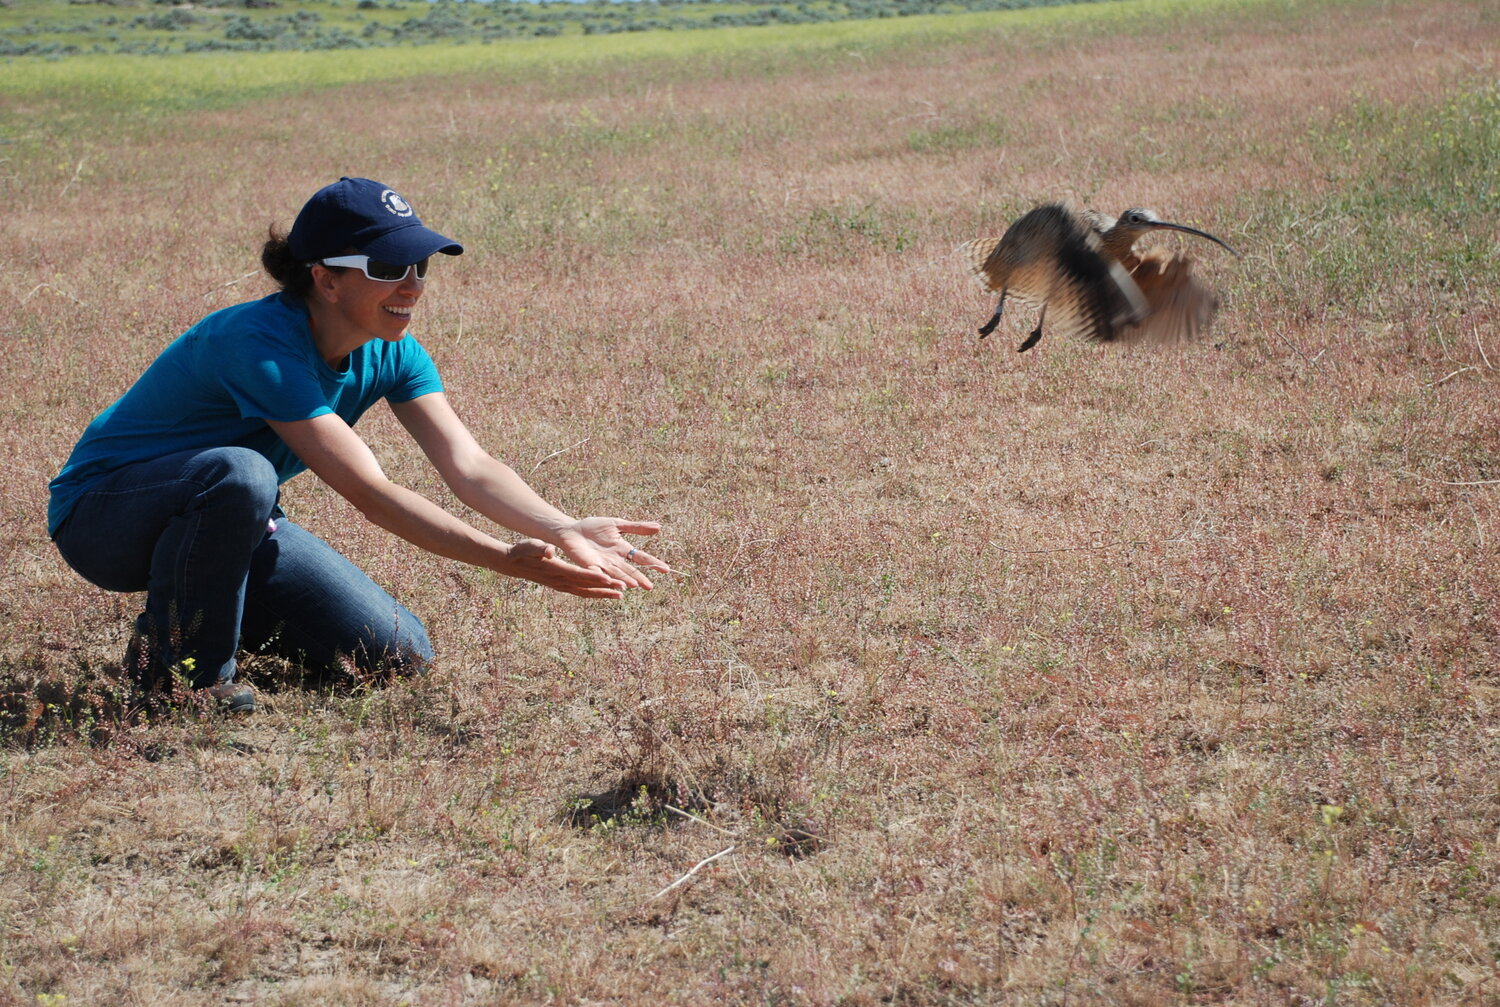 a biologist kneels on the ground with open palms as a Long-billed Curlew flies off